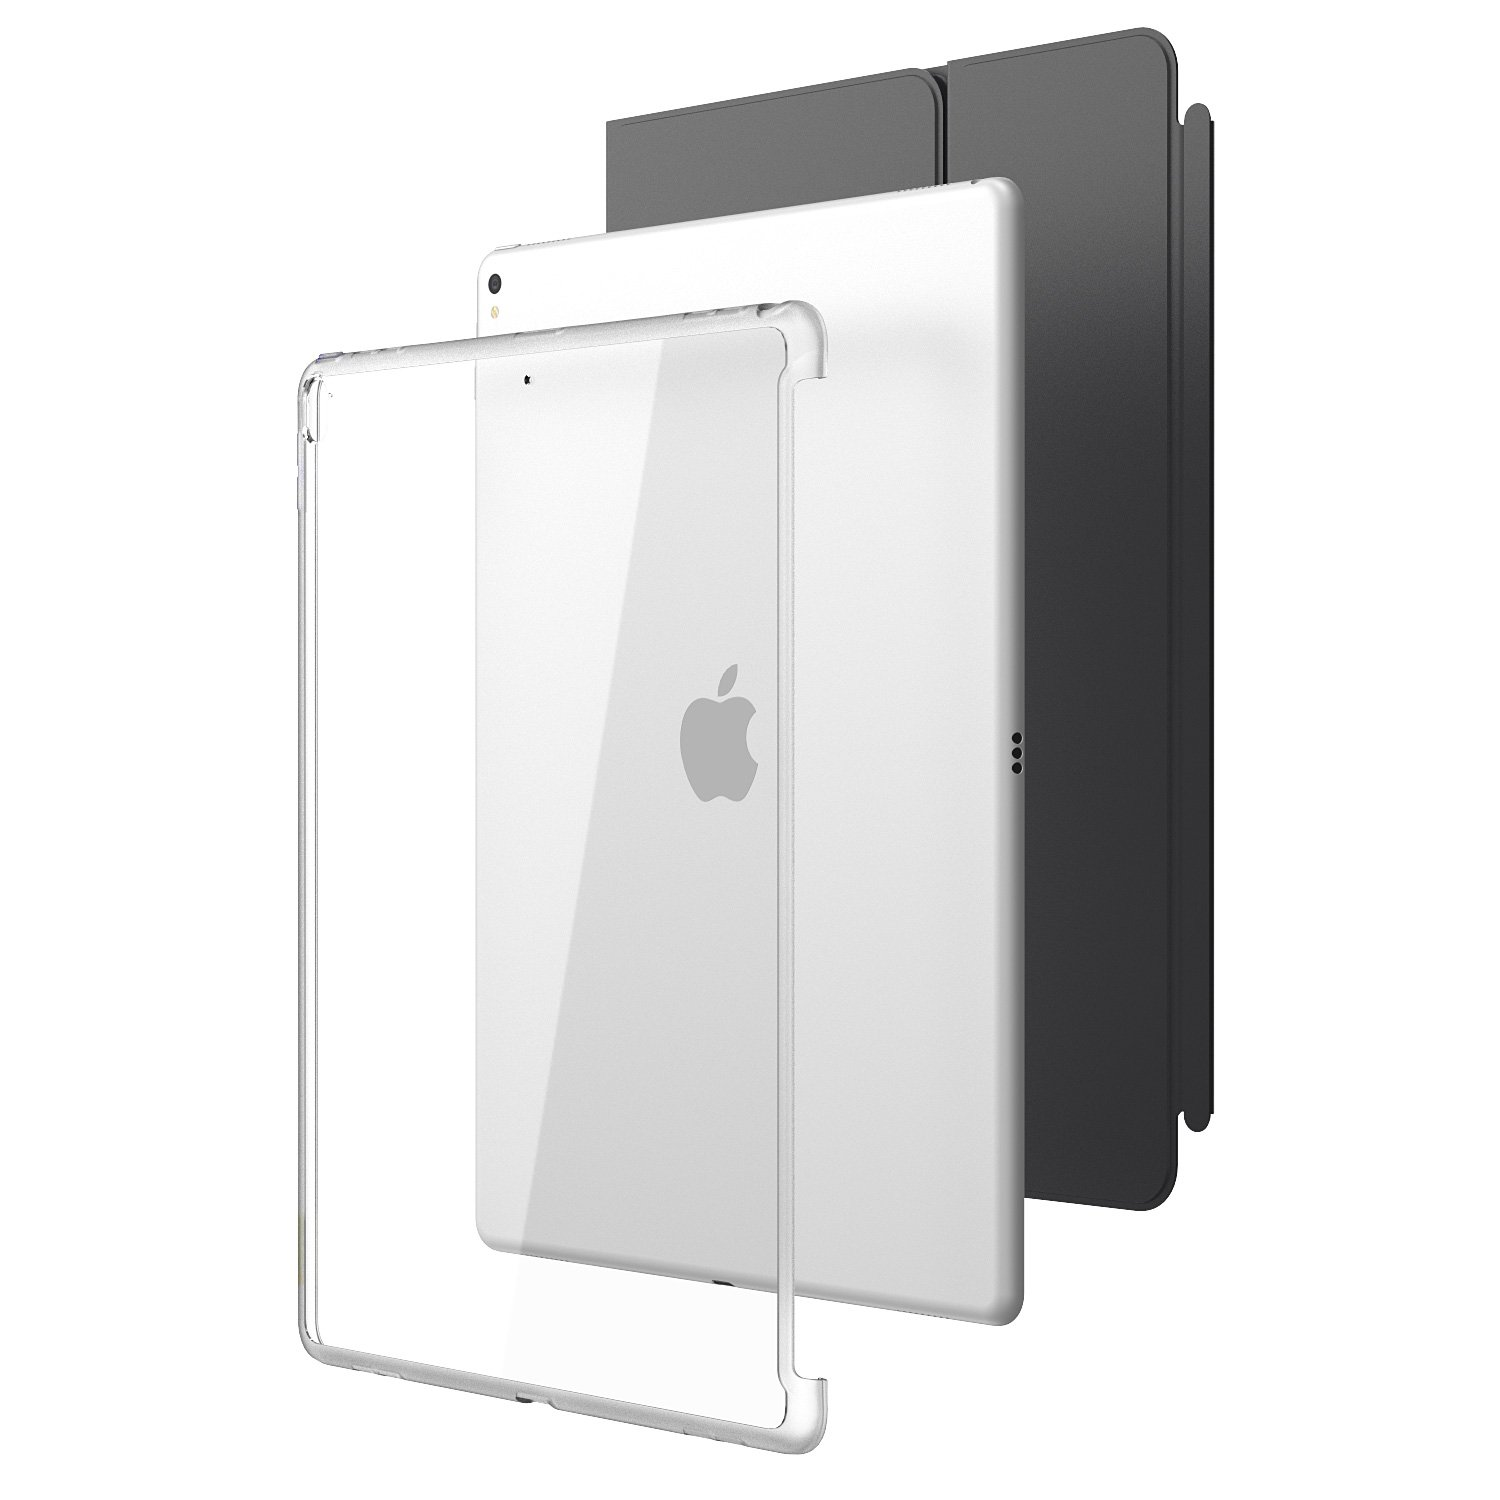 New iPad Pro 12.9 2017 Case, i-Blason [Compatible with Official Smart Cover and Smart Keyboard] Clear Hybrid Cover Case for Apple iPad Pro 12.9 2017 Release,Not Fit iPad Pro 12.9 2018 (Clear)